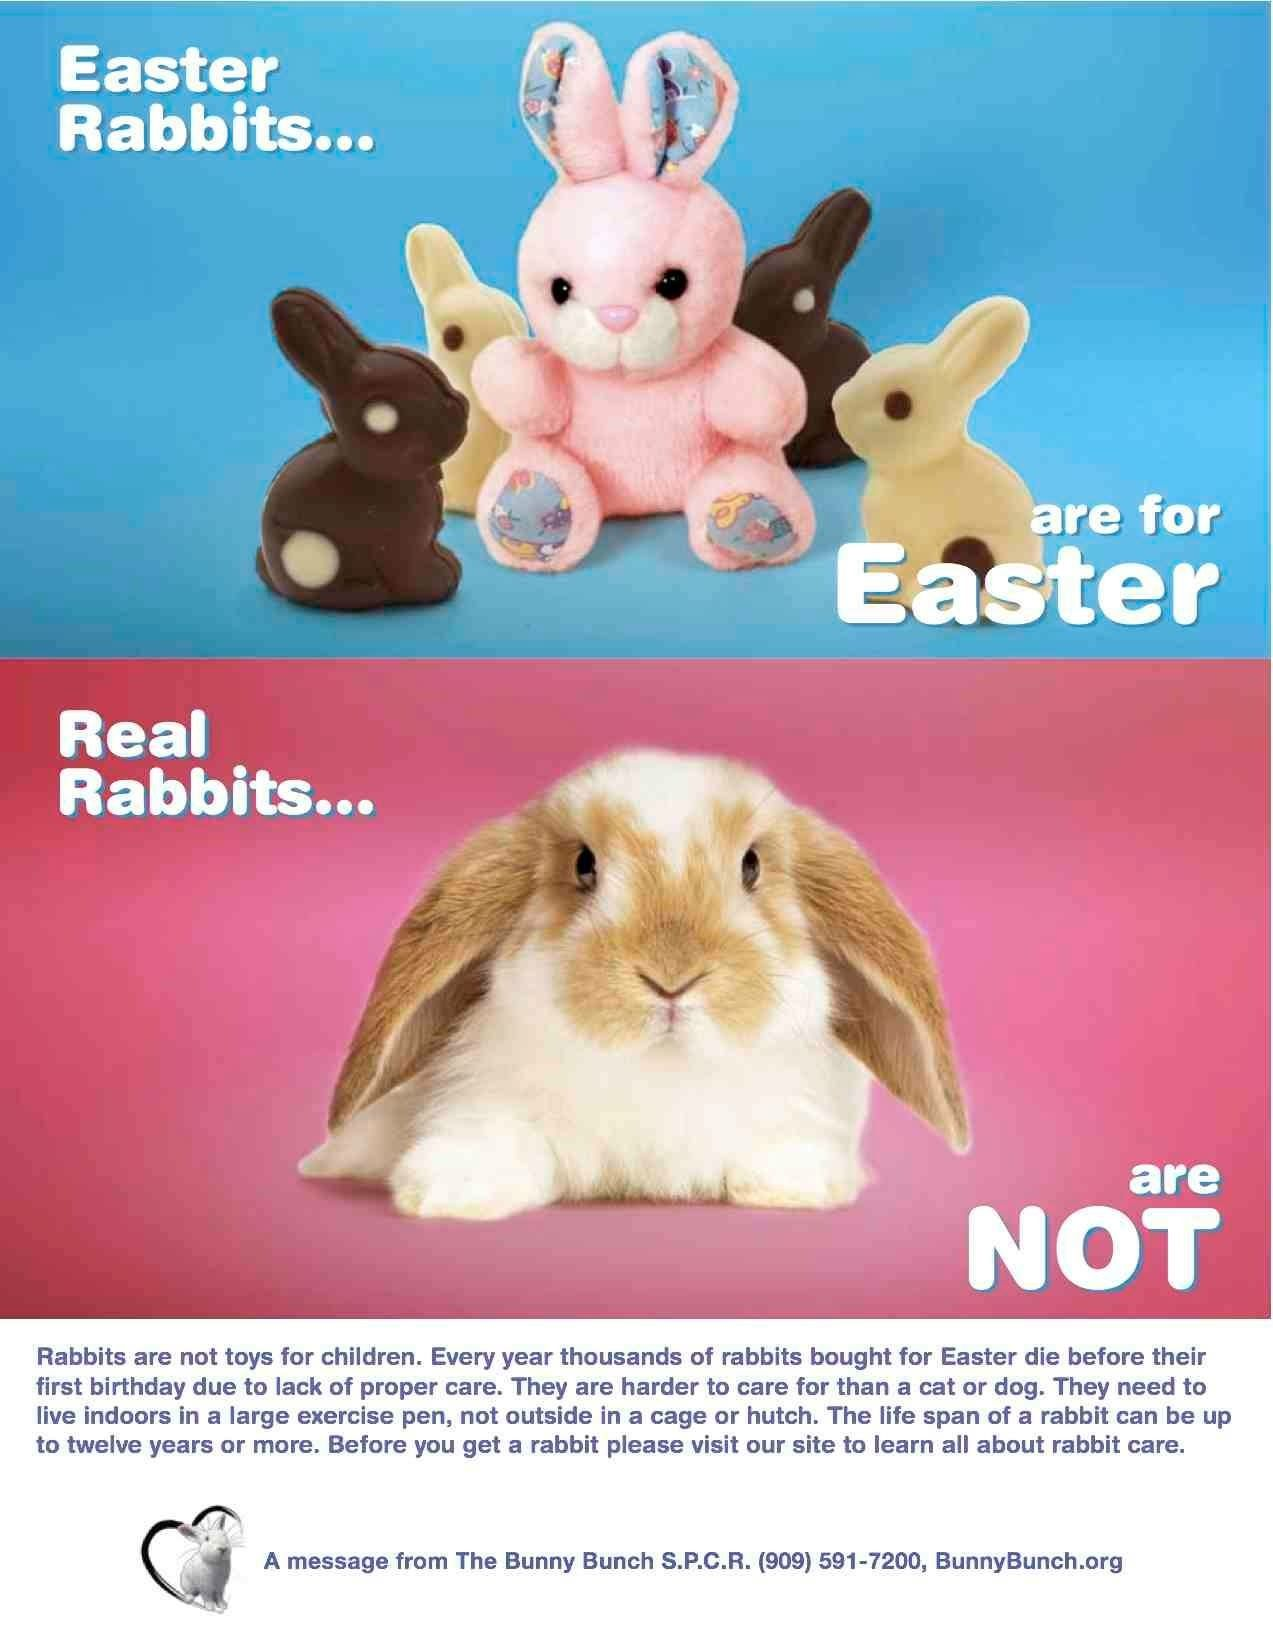 Real rabbits are not for easter not easterxmas gifts real rabbits are not for easter negle Choice Image